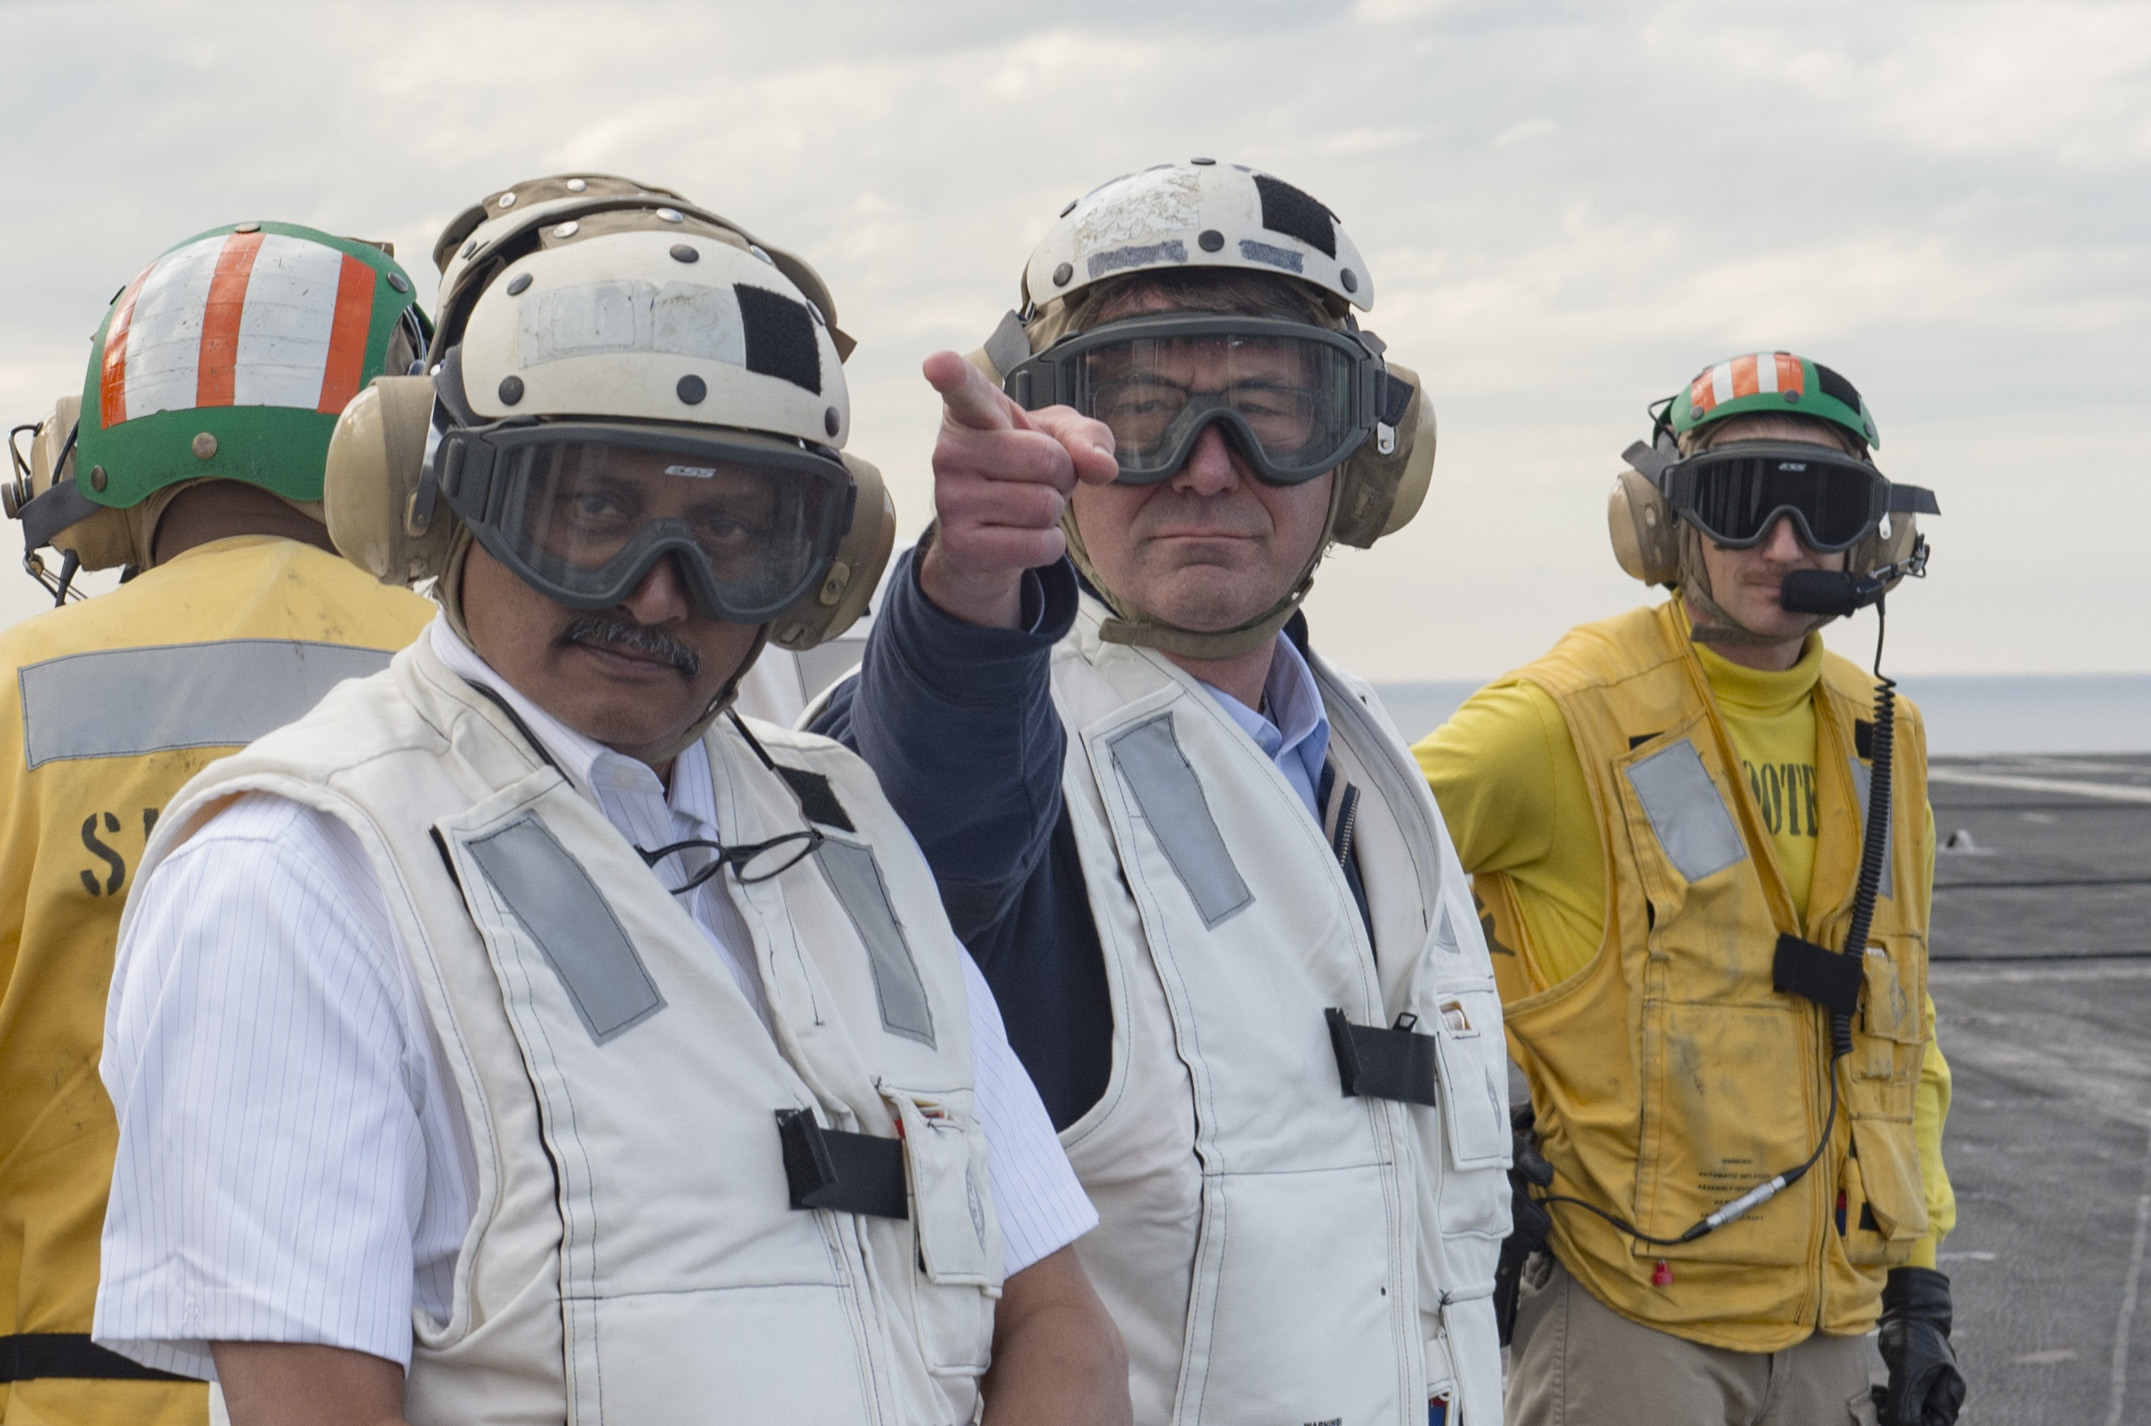 Indian Minister of Defense Manohar Parrikar (left) and Secretary of Defense Ash Carter (center) observe flight operations on USS Dwight D. Eisenhower (CVN-69). US Navy Photo